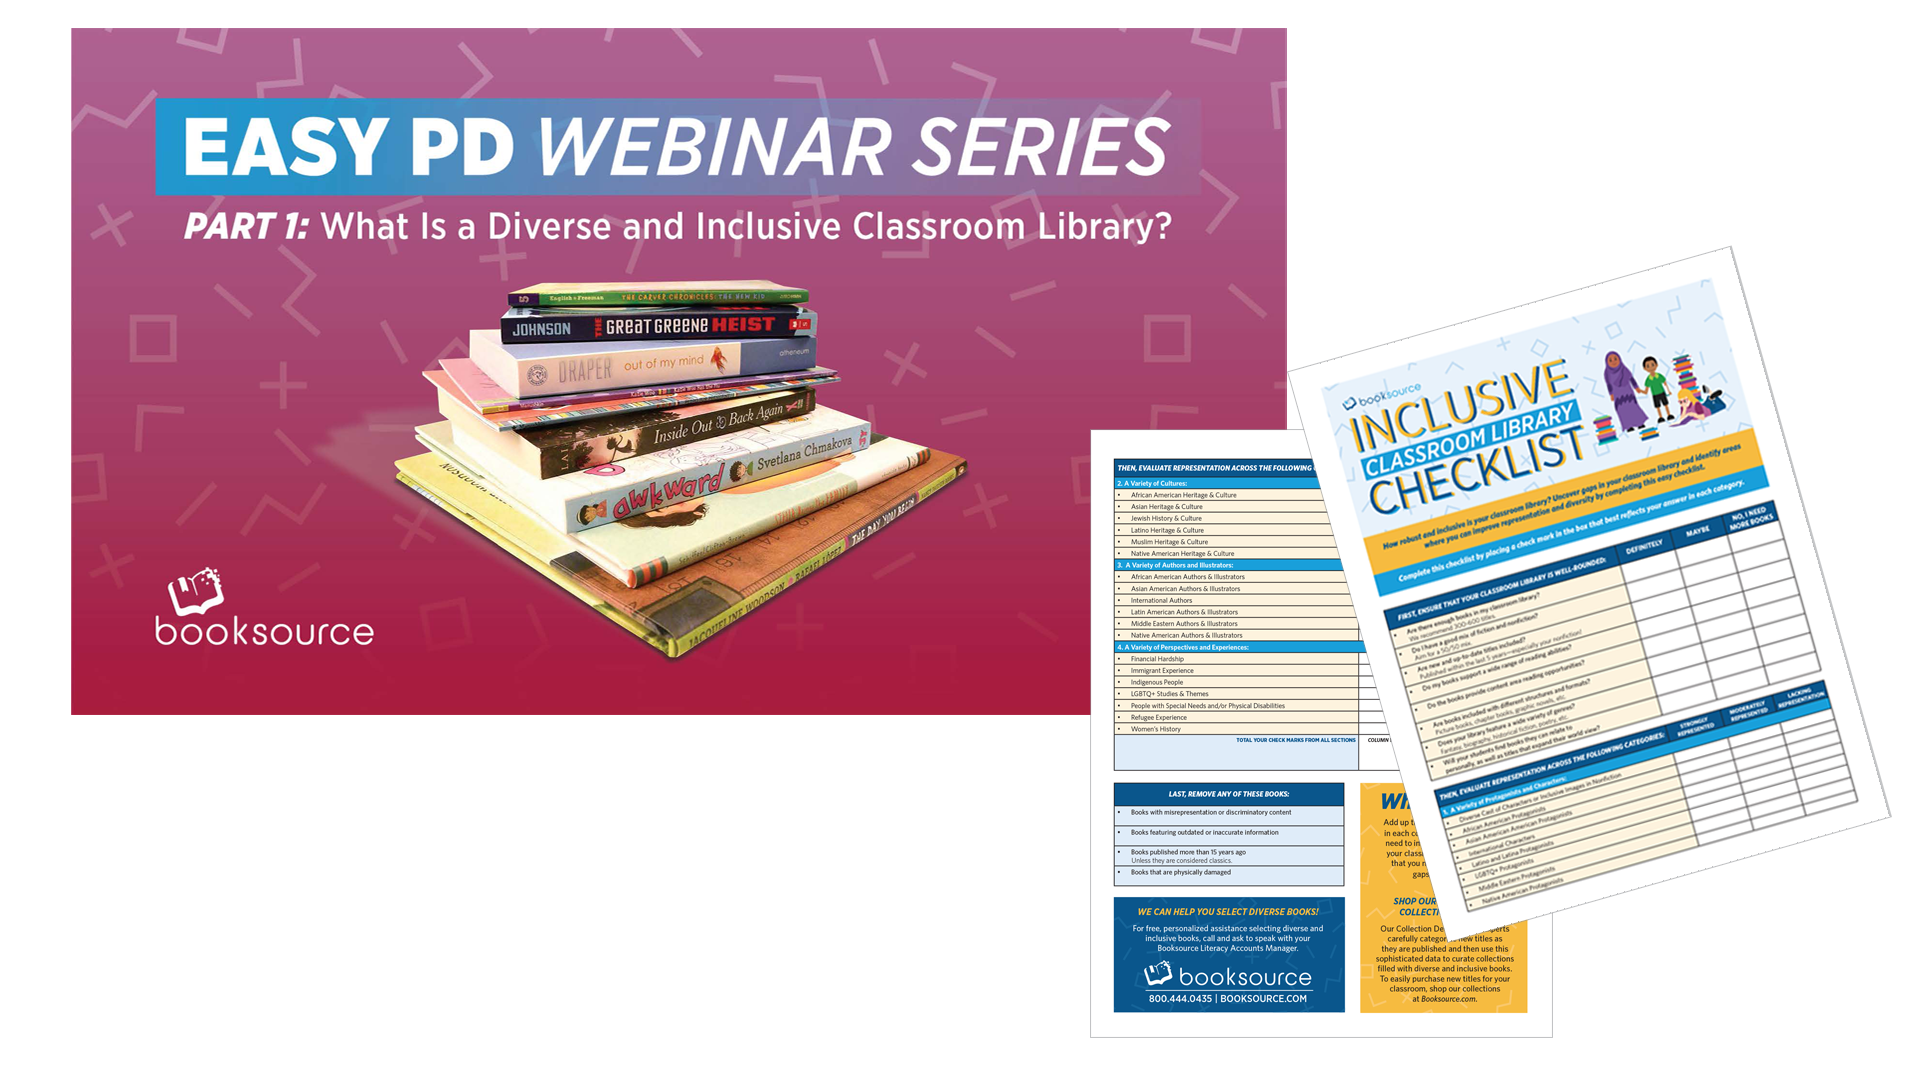 Part 1: What Is a Diverse and Inclusive Classroom Library?